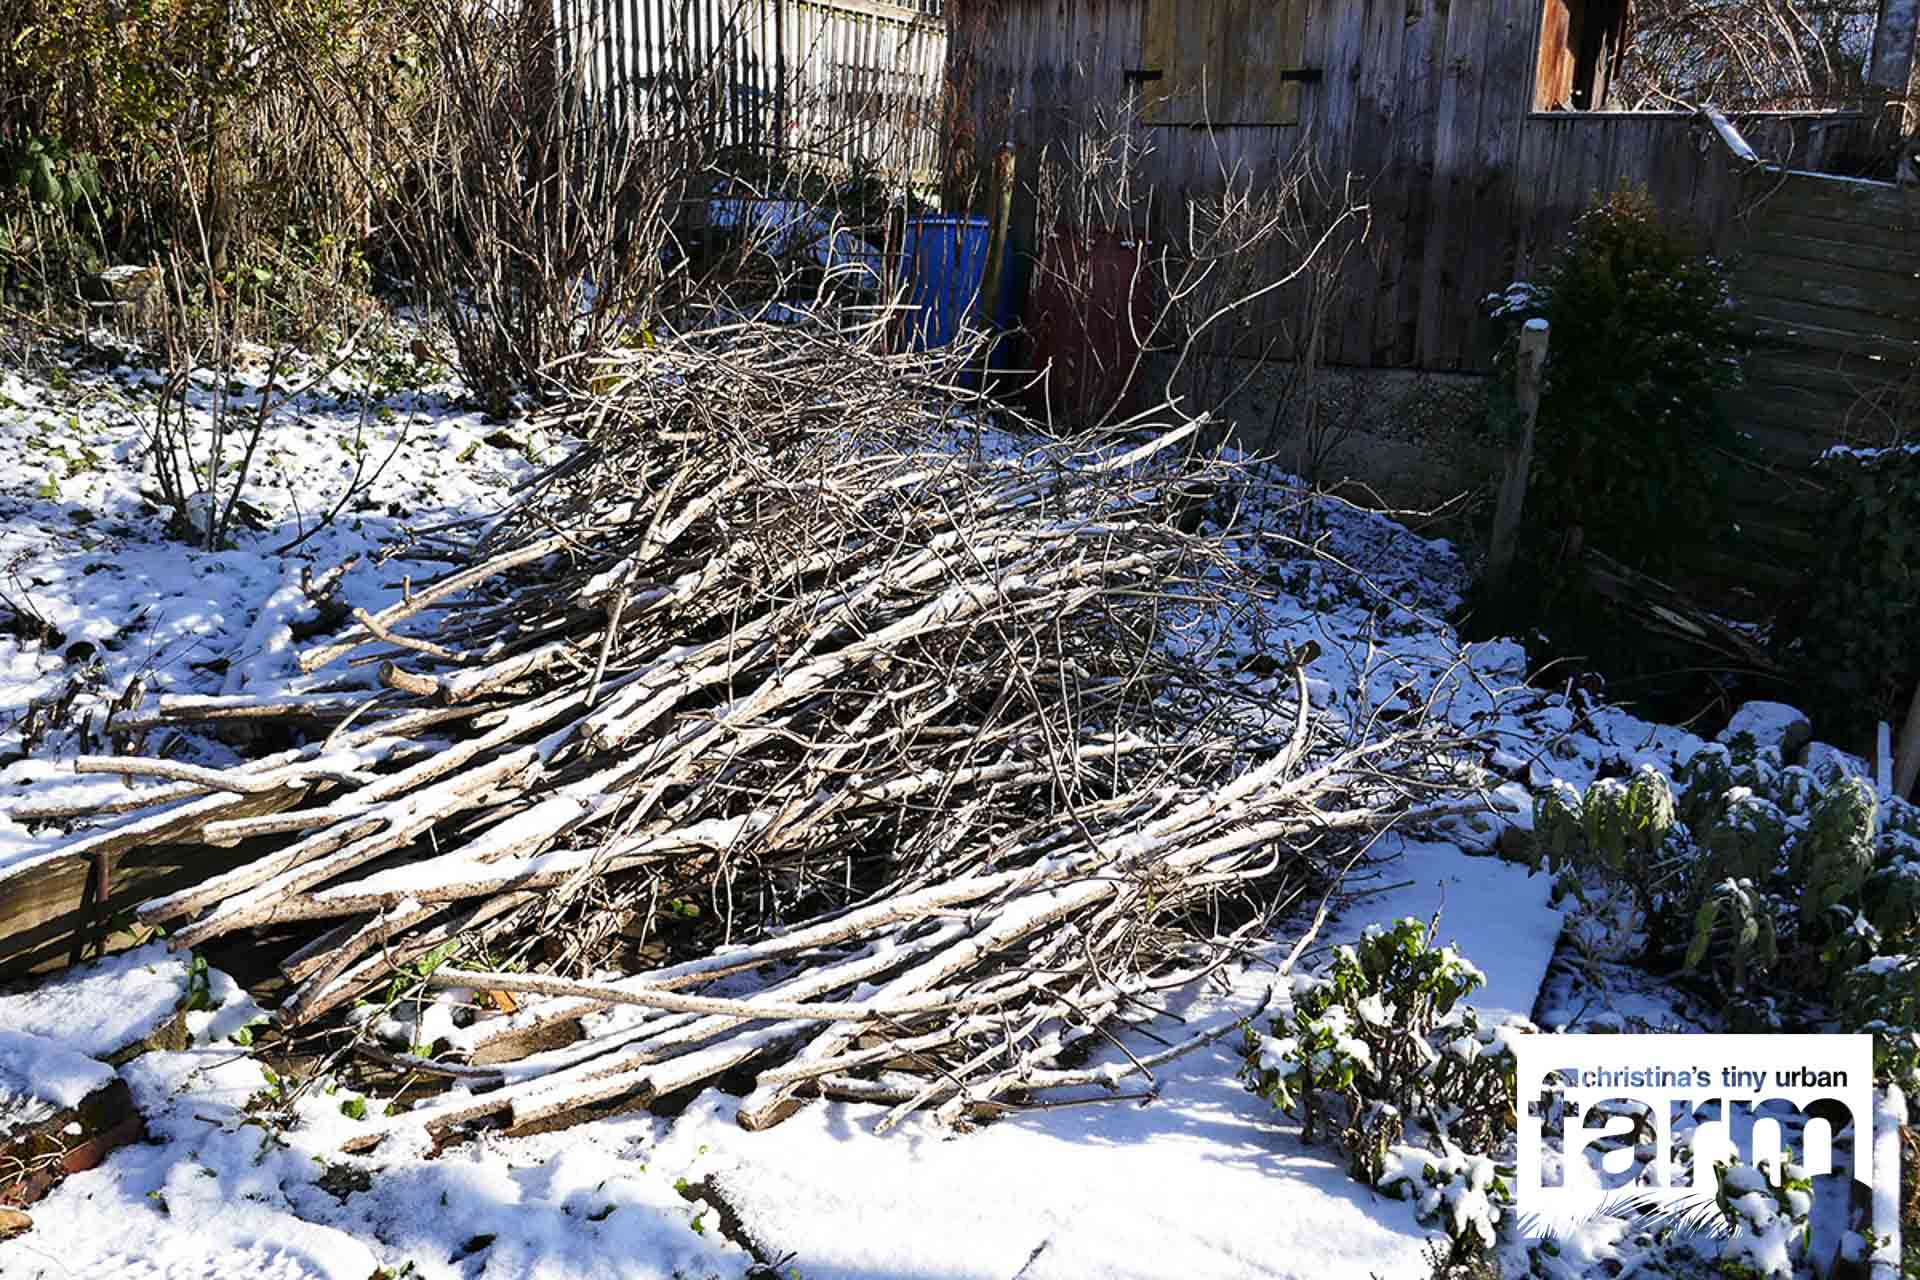 Cut off branches, covered in snow, providing shelter for small critters.